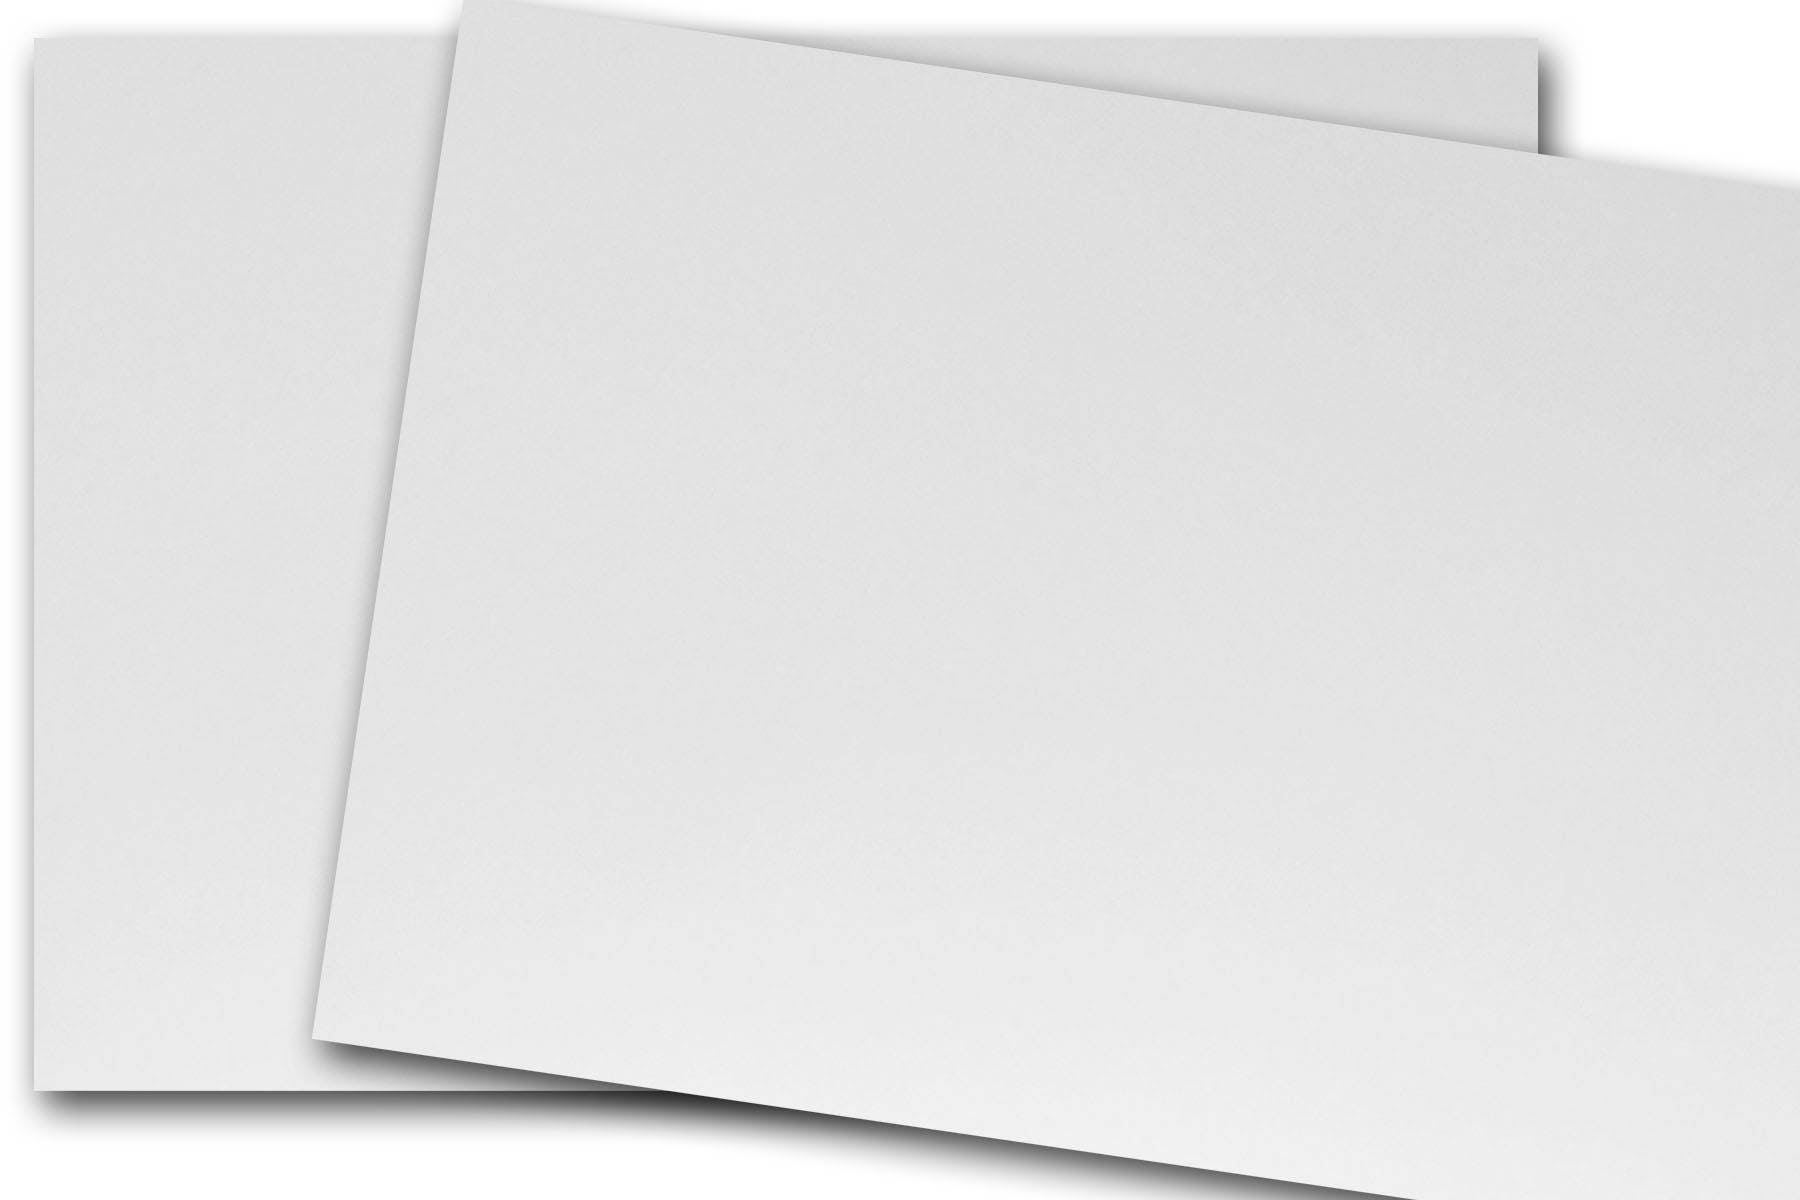 Scrapbook paper vs cardstock - Classic Crest Heavy 130lb Solar White Card Stock 8 5x11 25 Sheets